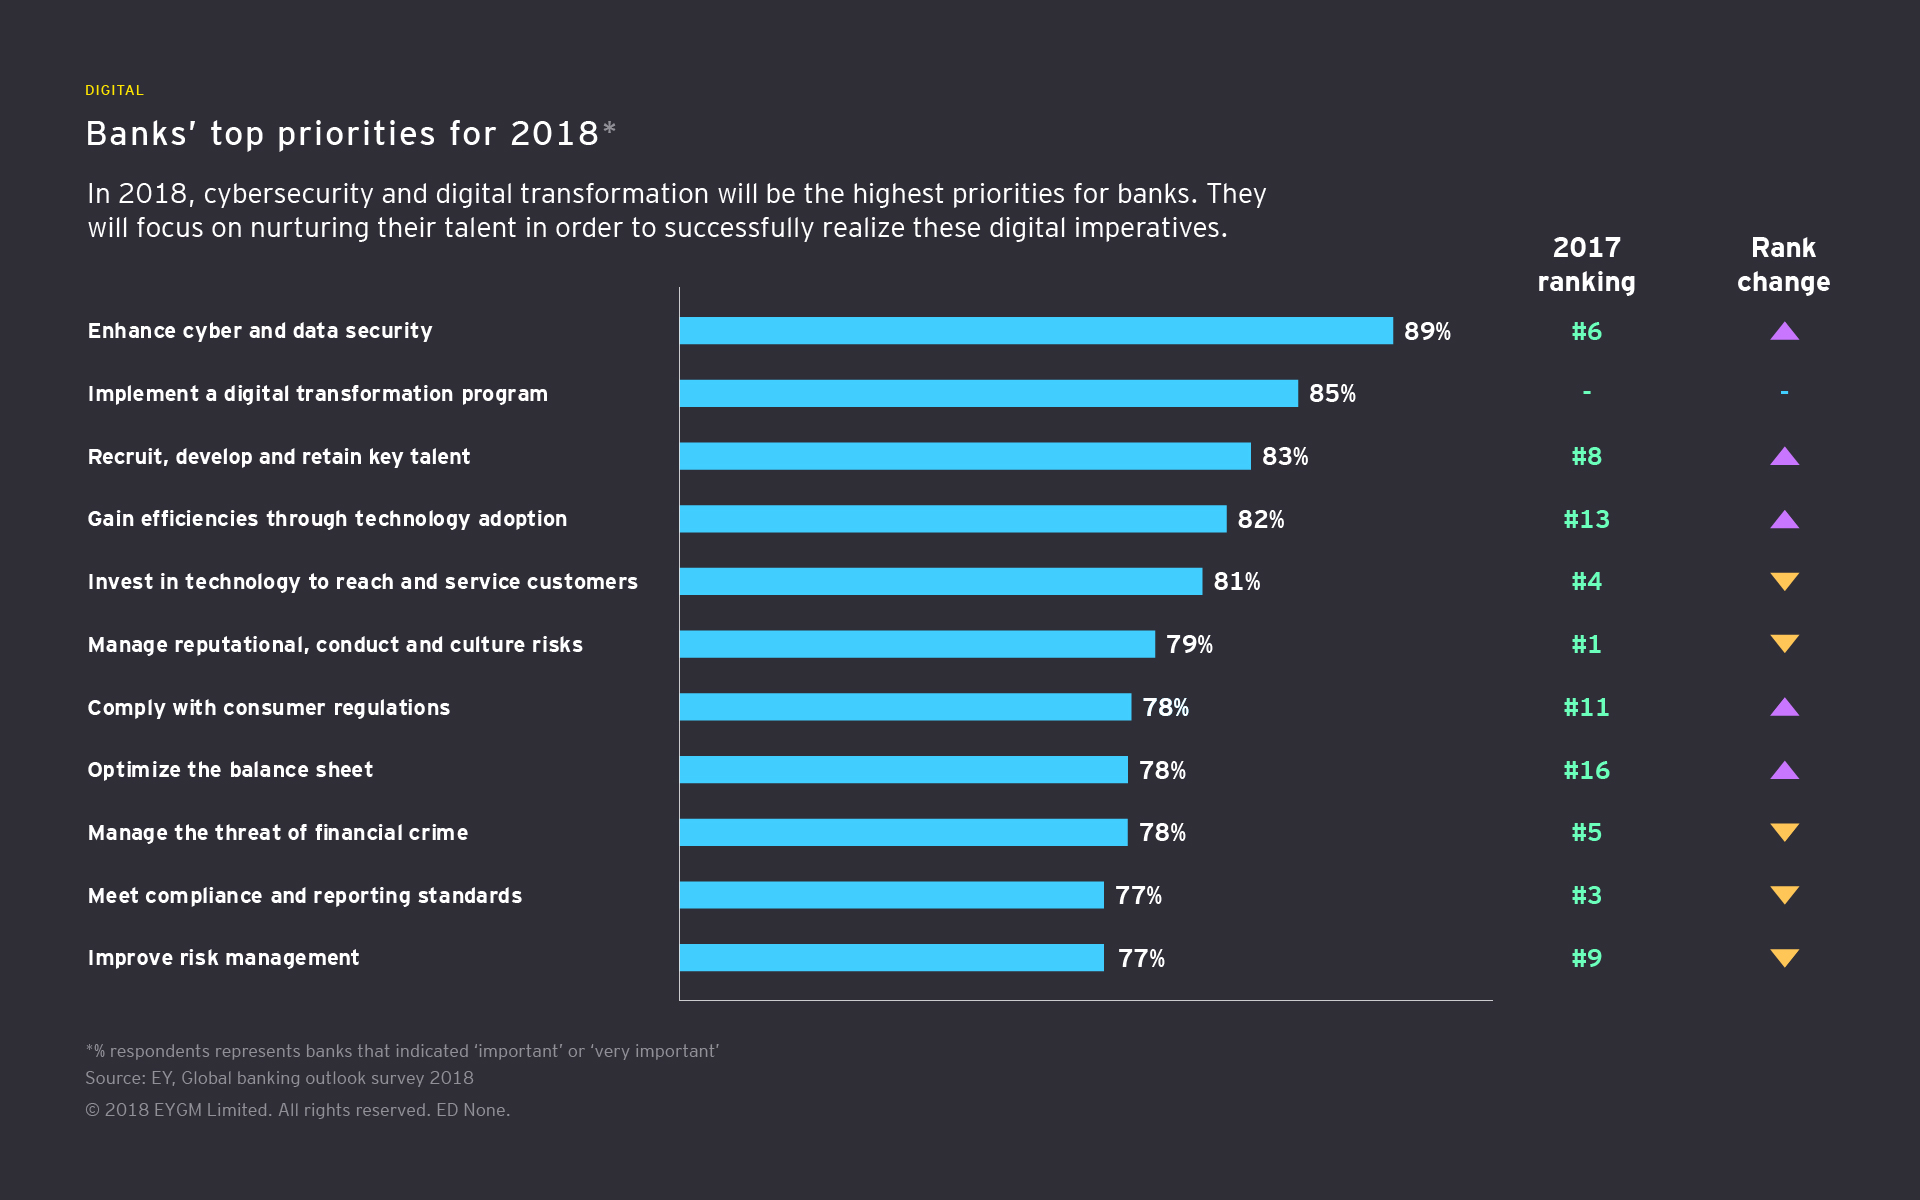 Banks' top priorities for 2018